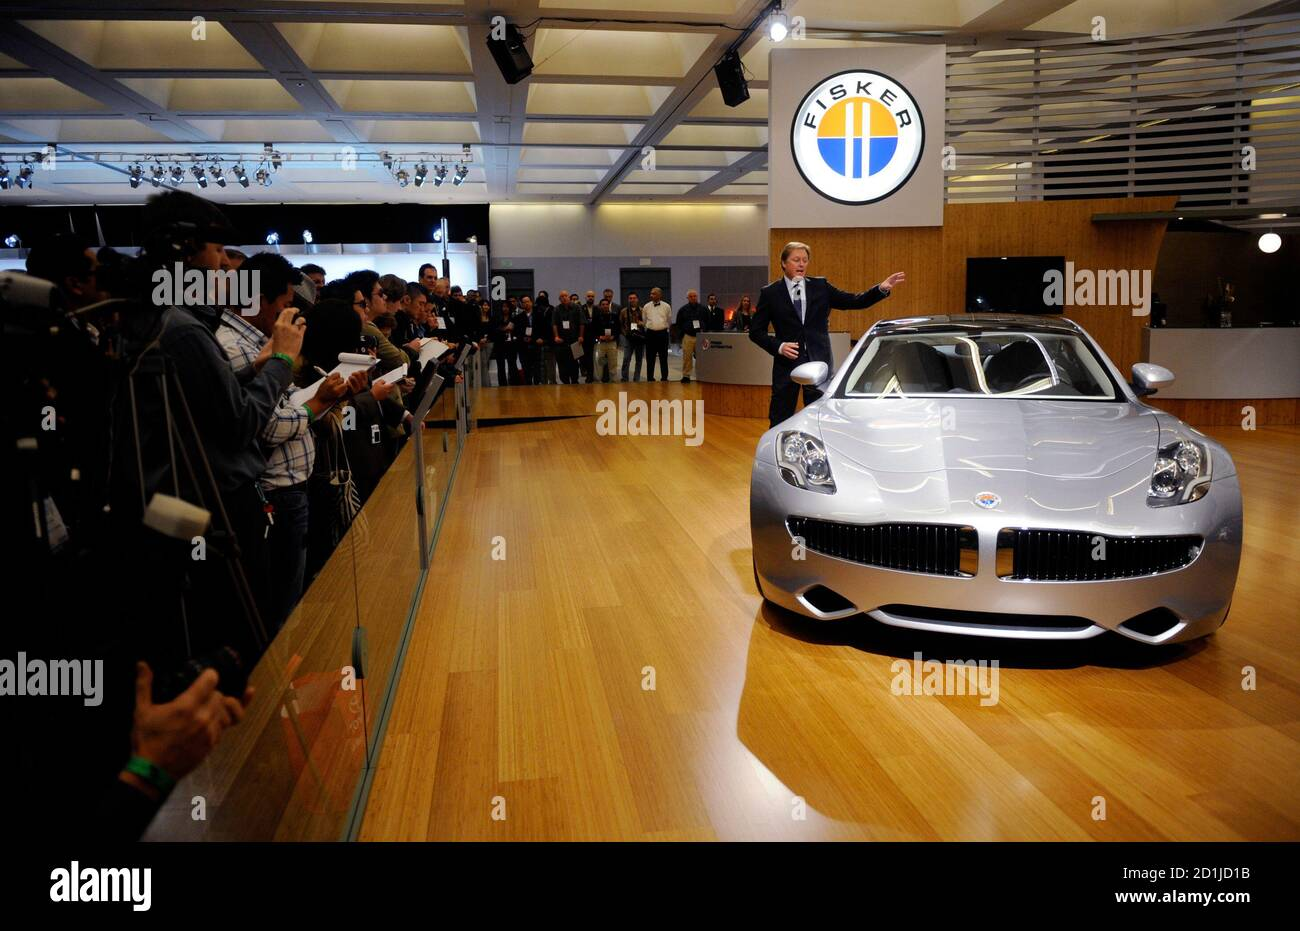 Henrik Fisker Founder And Ceo Of Fisker Automotive Talks About The Fisker Karma During A News Conference At The La Auto Show In Los Angeles December 3 2009 Reuters Phil Mccarten United States